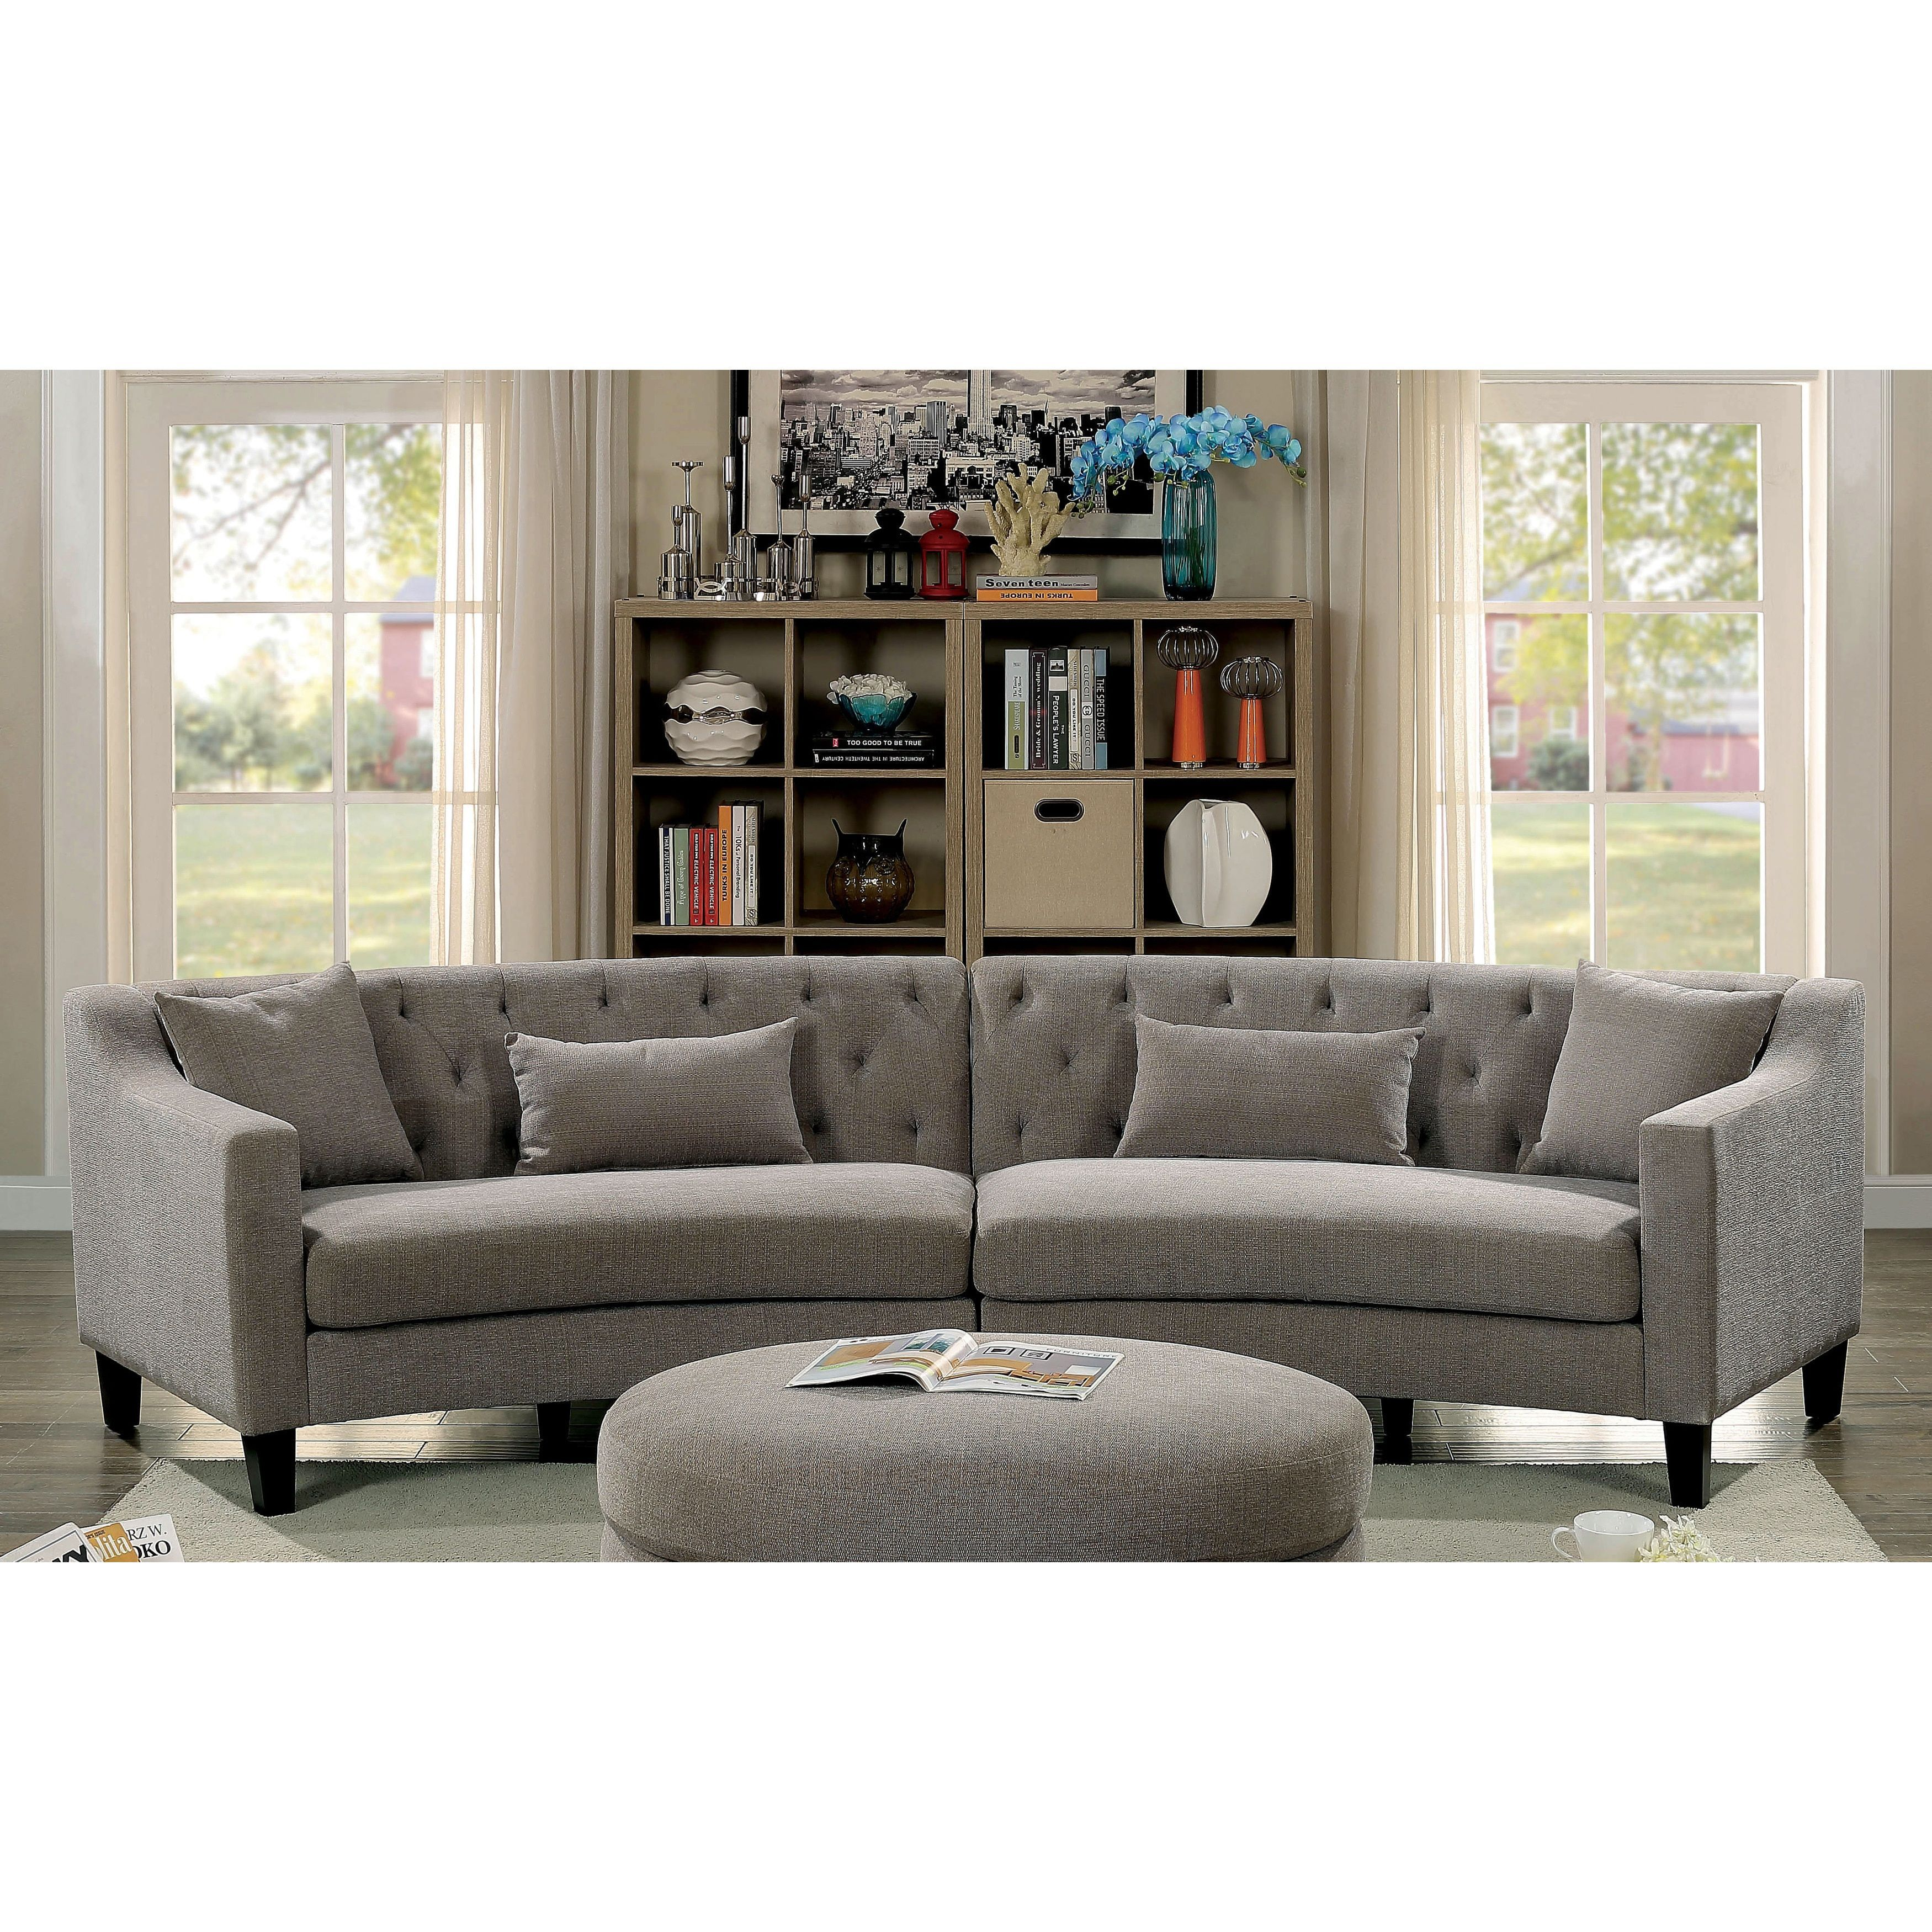 Etonnant Aretha Contemporary Grey Tufted Rounded Sectional Sofa By Furniture Of  America (Warm Grey) (Foam)